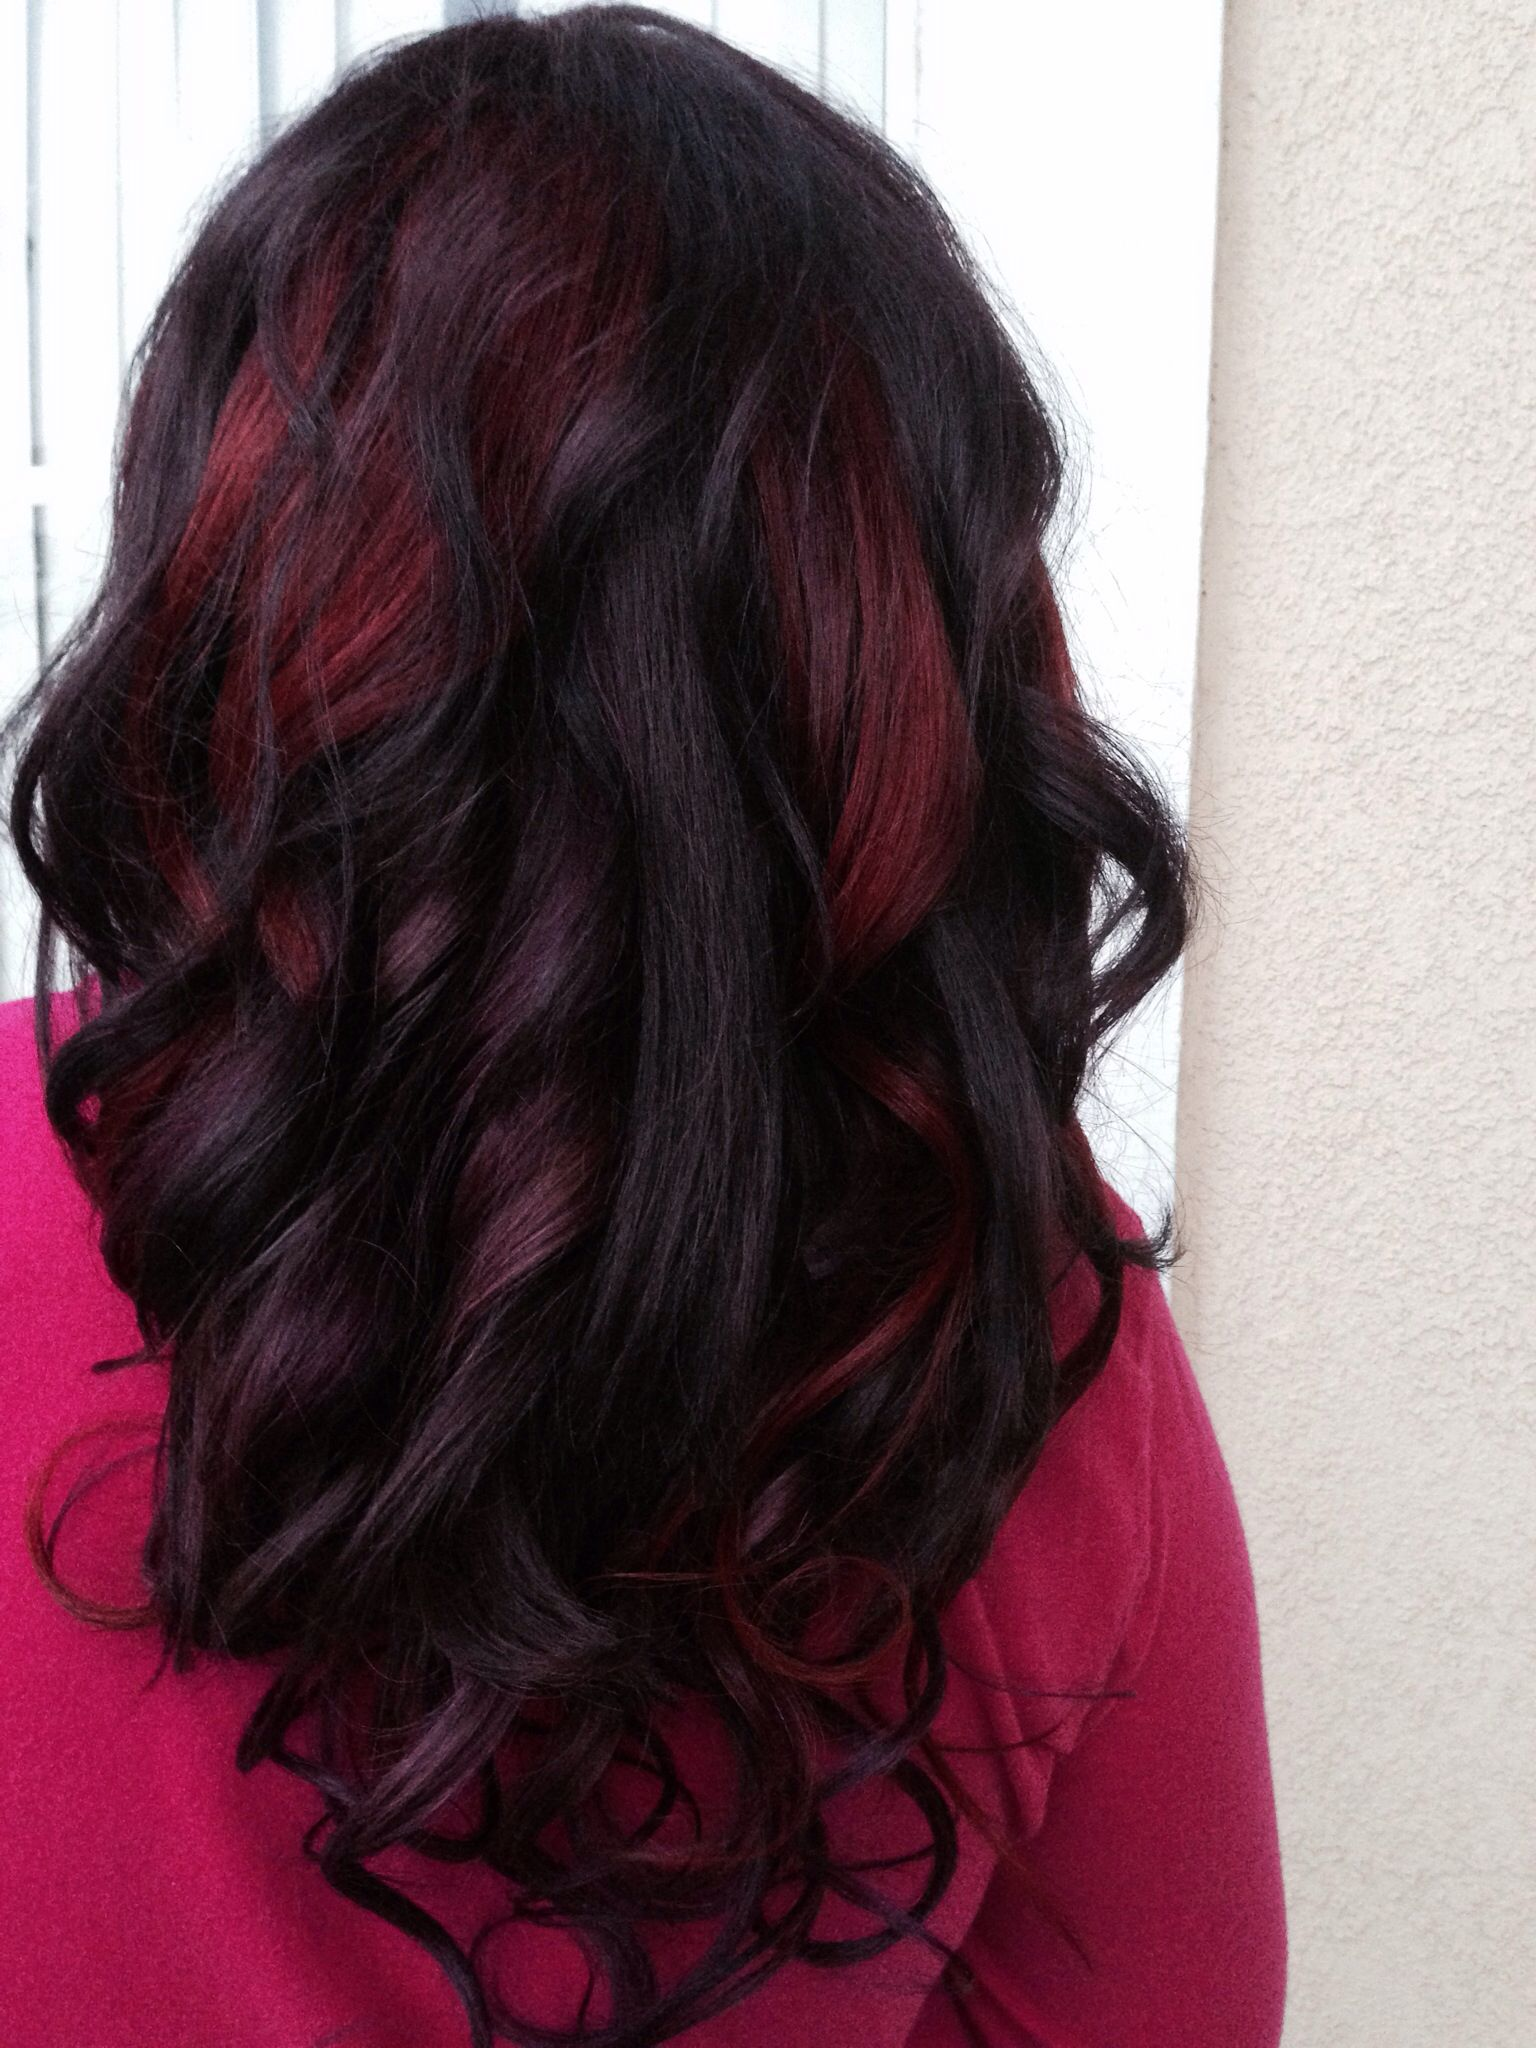 Hair by carrie gouvion matrix so color hd reds long hair red hair matrix hair nvjuhfo Gallery